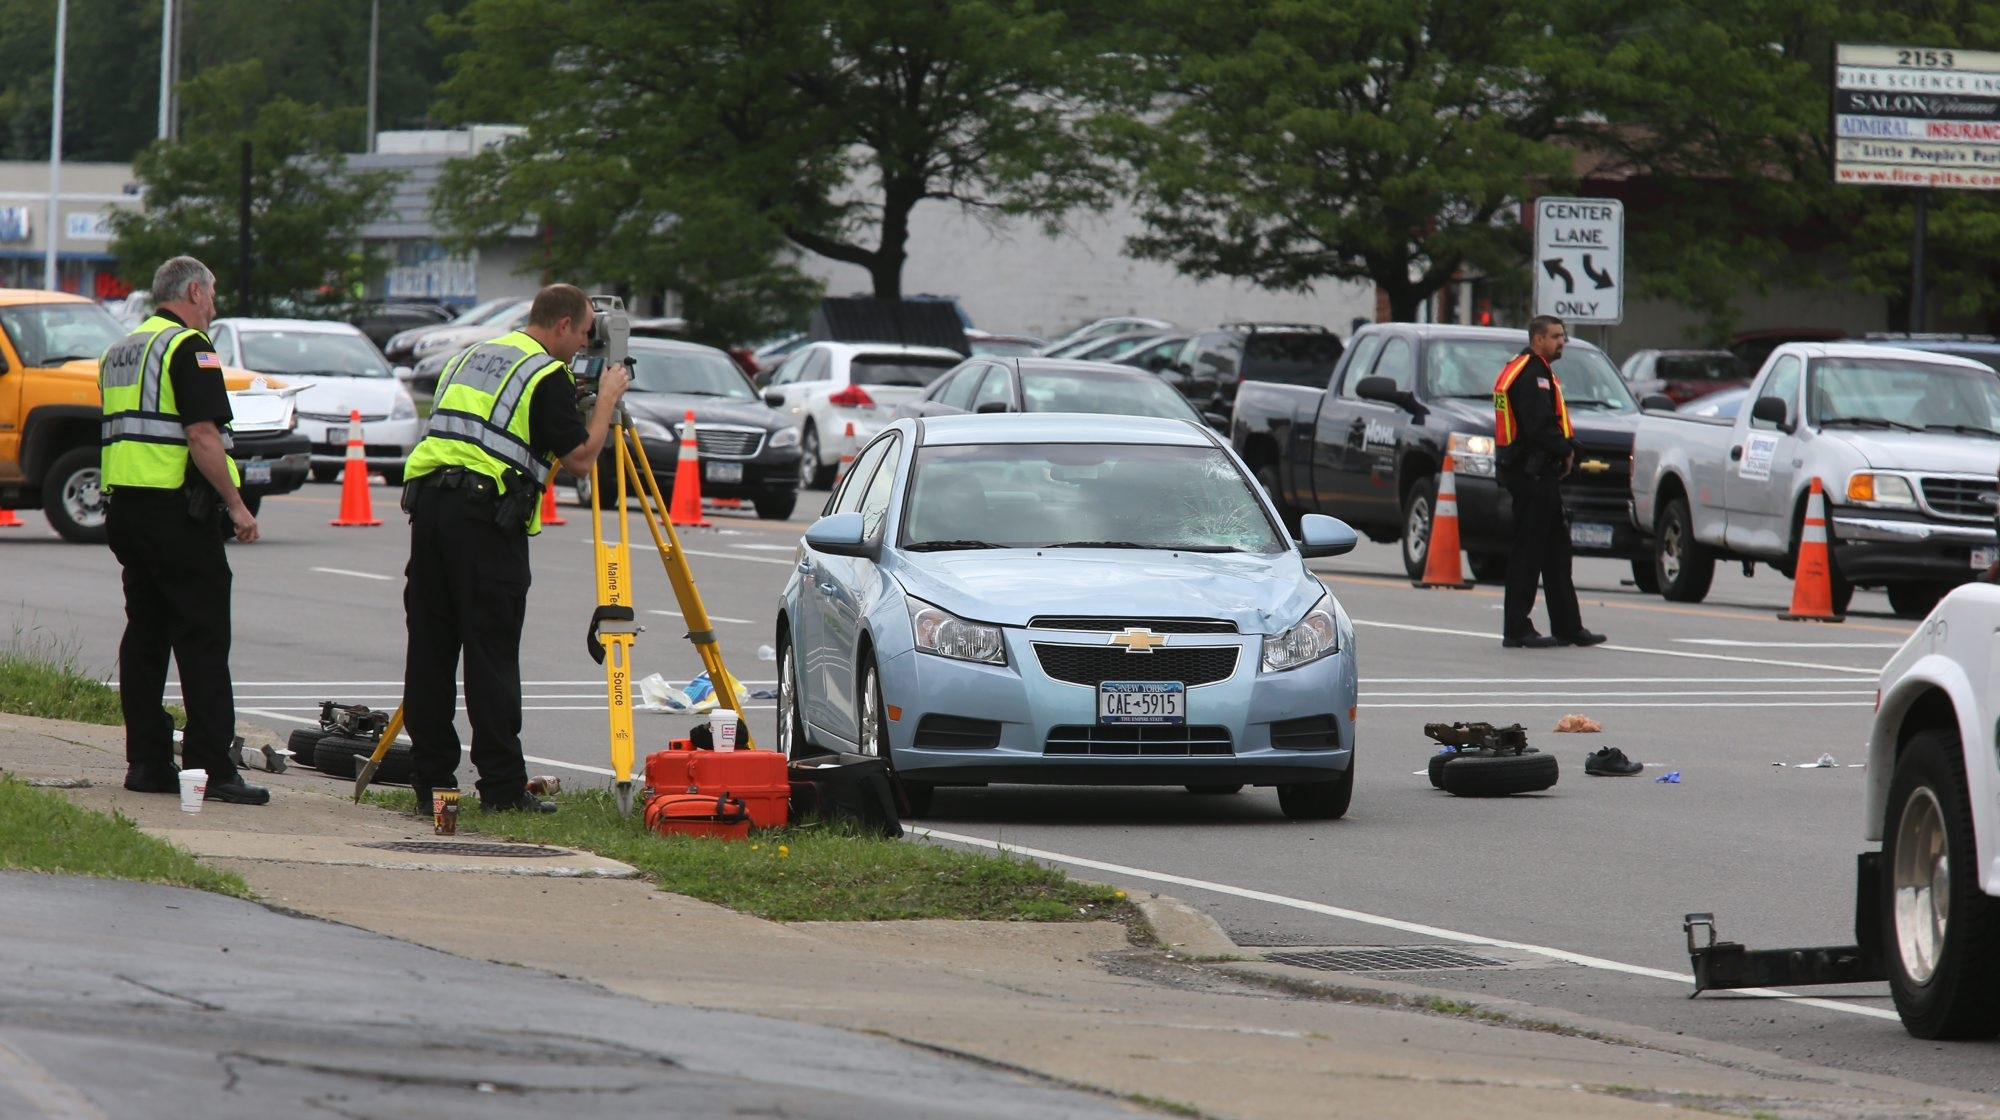 Police work the scene of a  fatal car-pedestrian accident in June at Niagara Falls Boulevard and Willow Ridge Drive, where another pedestrian was killed in August.